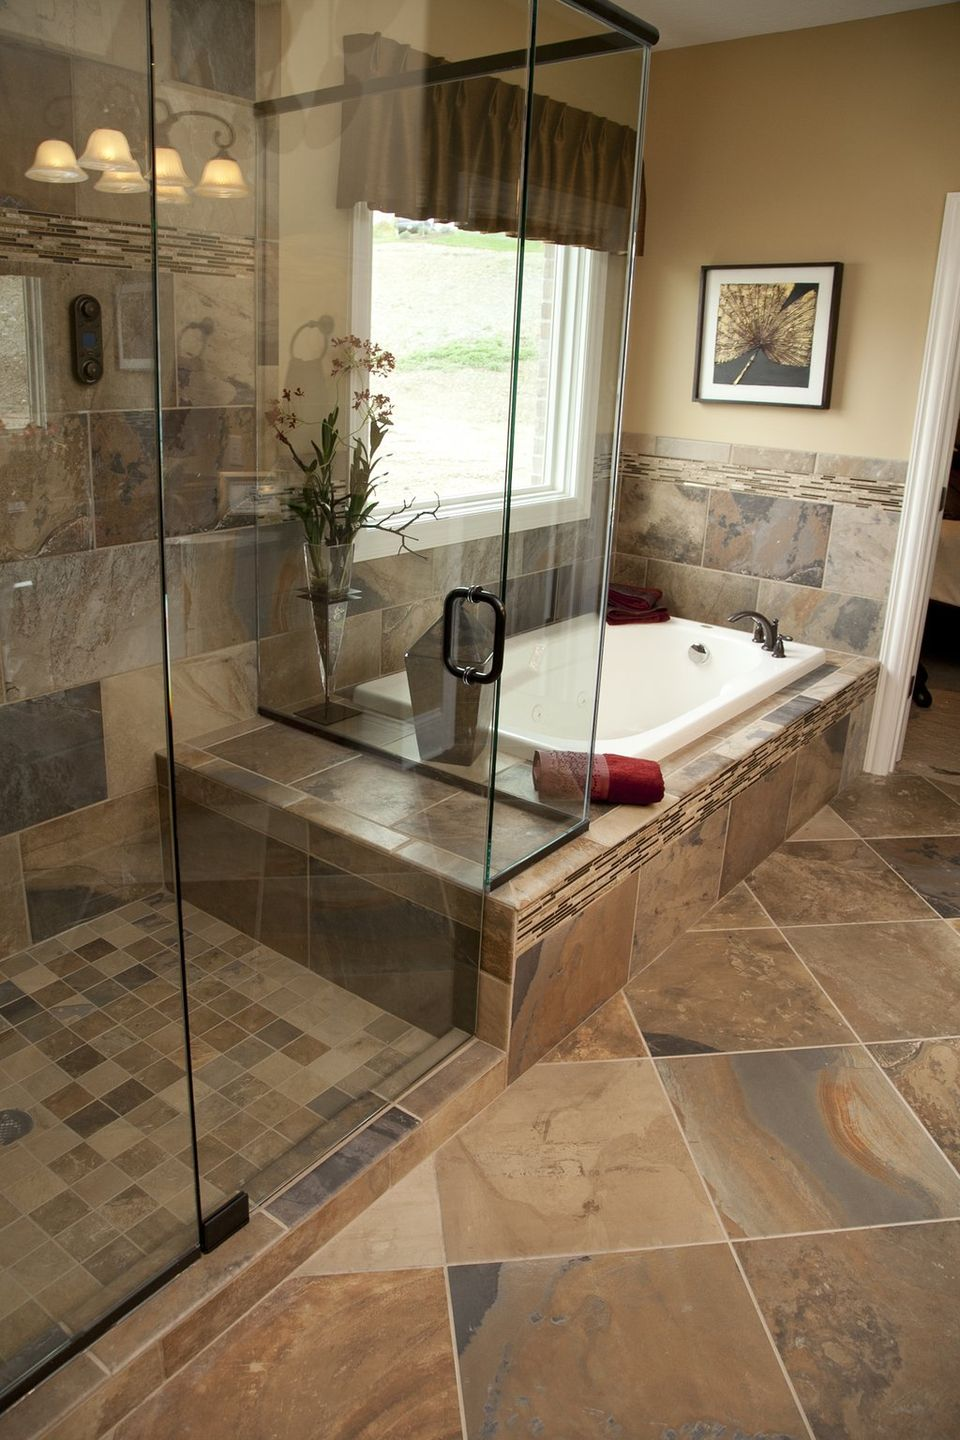 33 stunning pictures and ideas of natural stone bathroom for Bathroom tiles images gallery